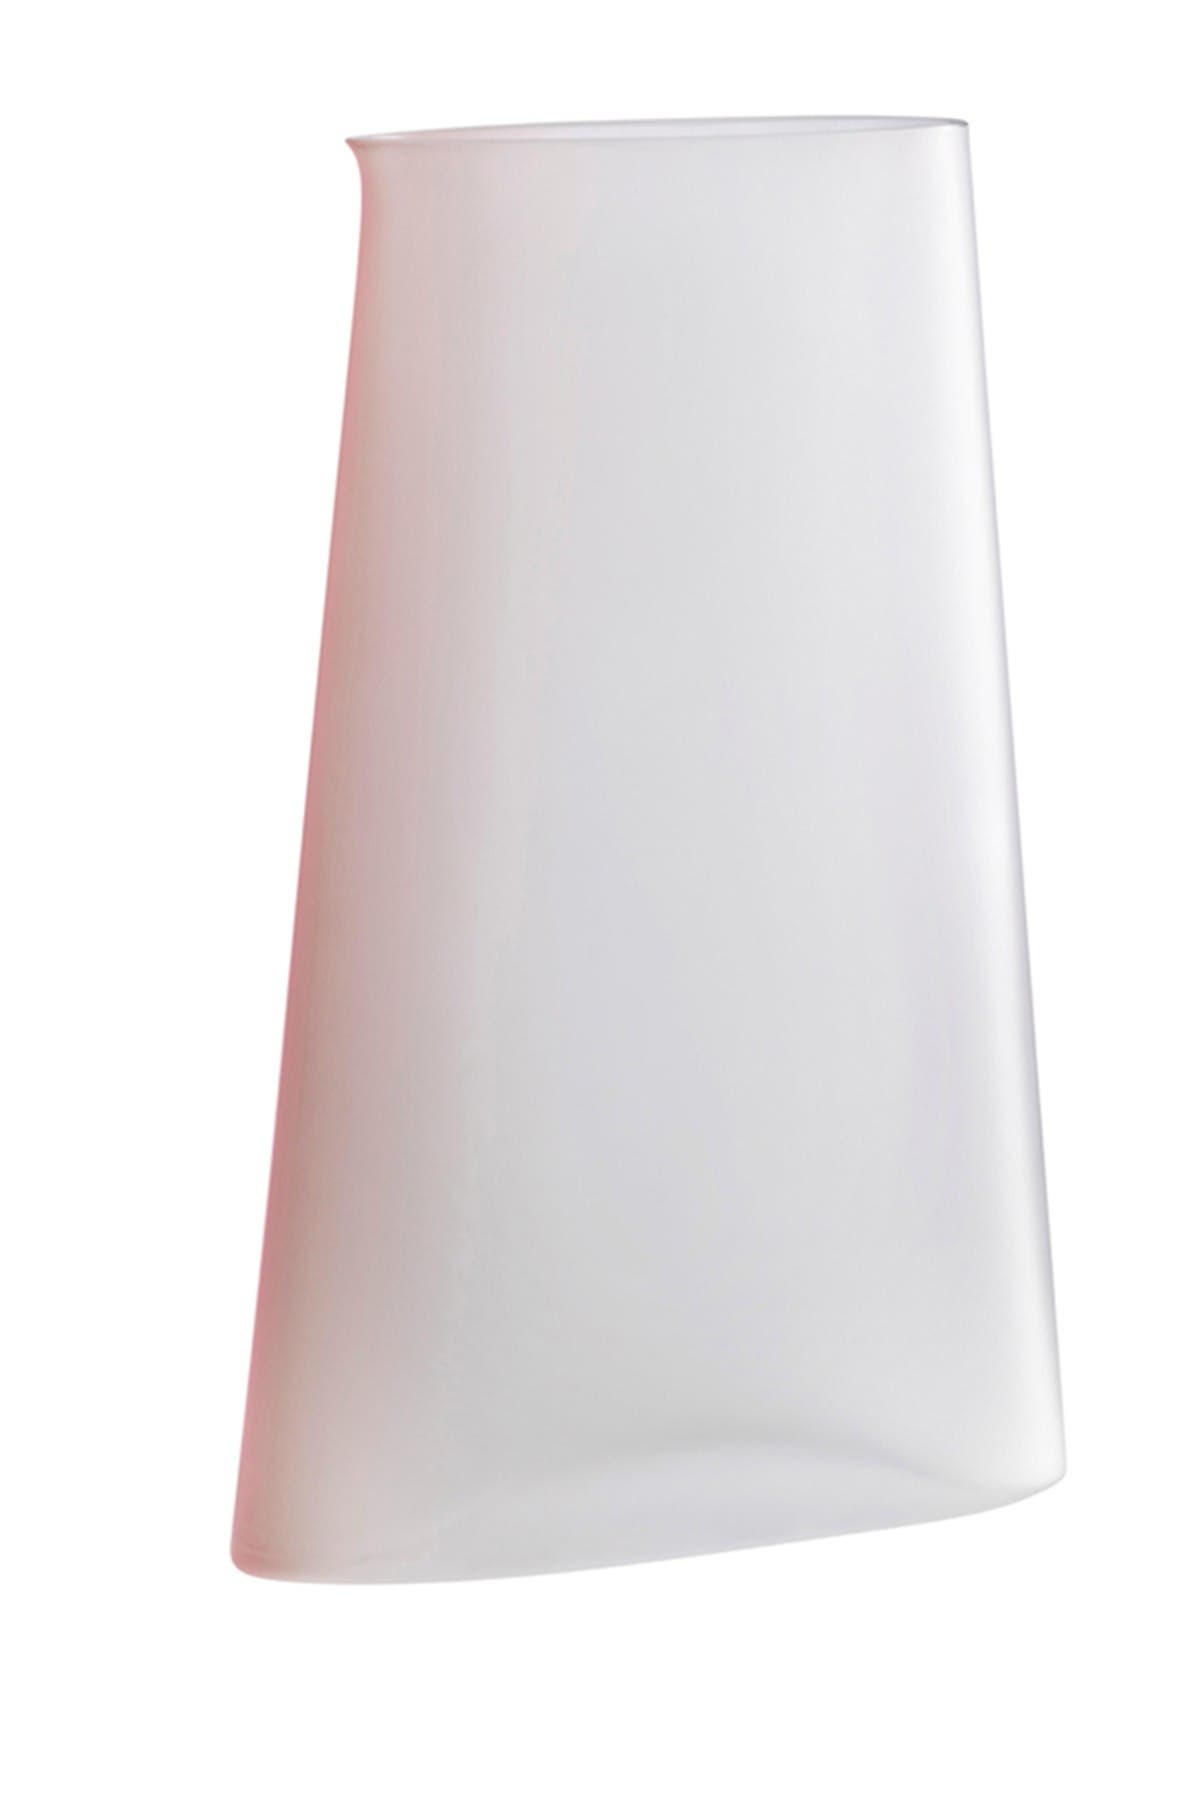 Image of Nude Glass Pigmento Pitcher - Pink Sprayed